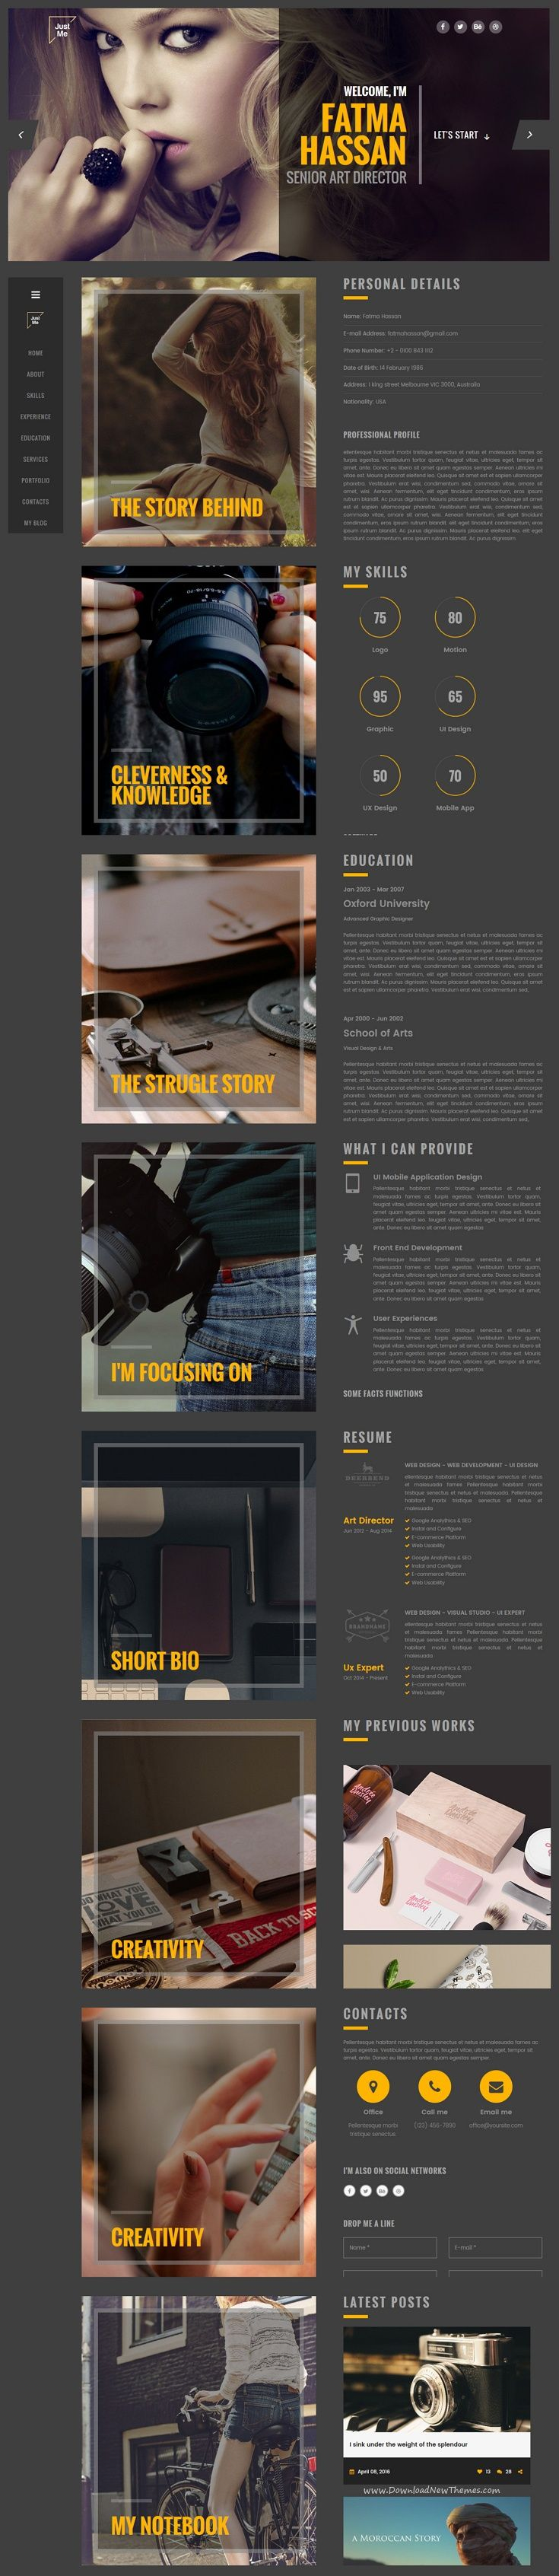 Just Me Creative Personal Resume vCard